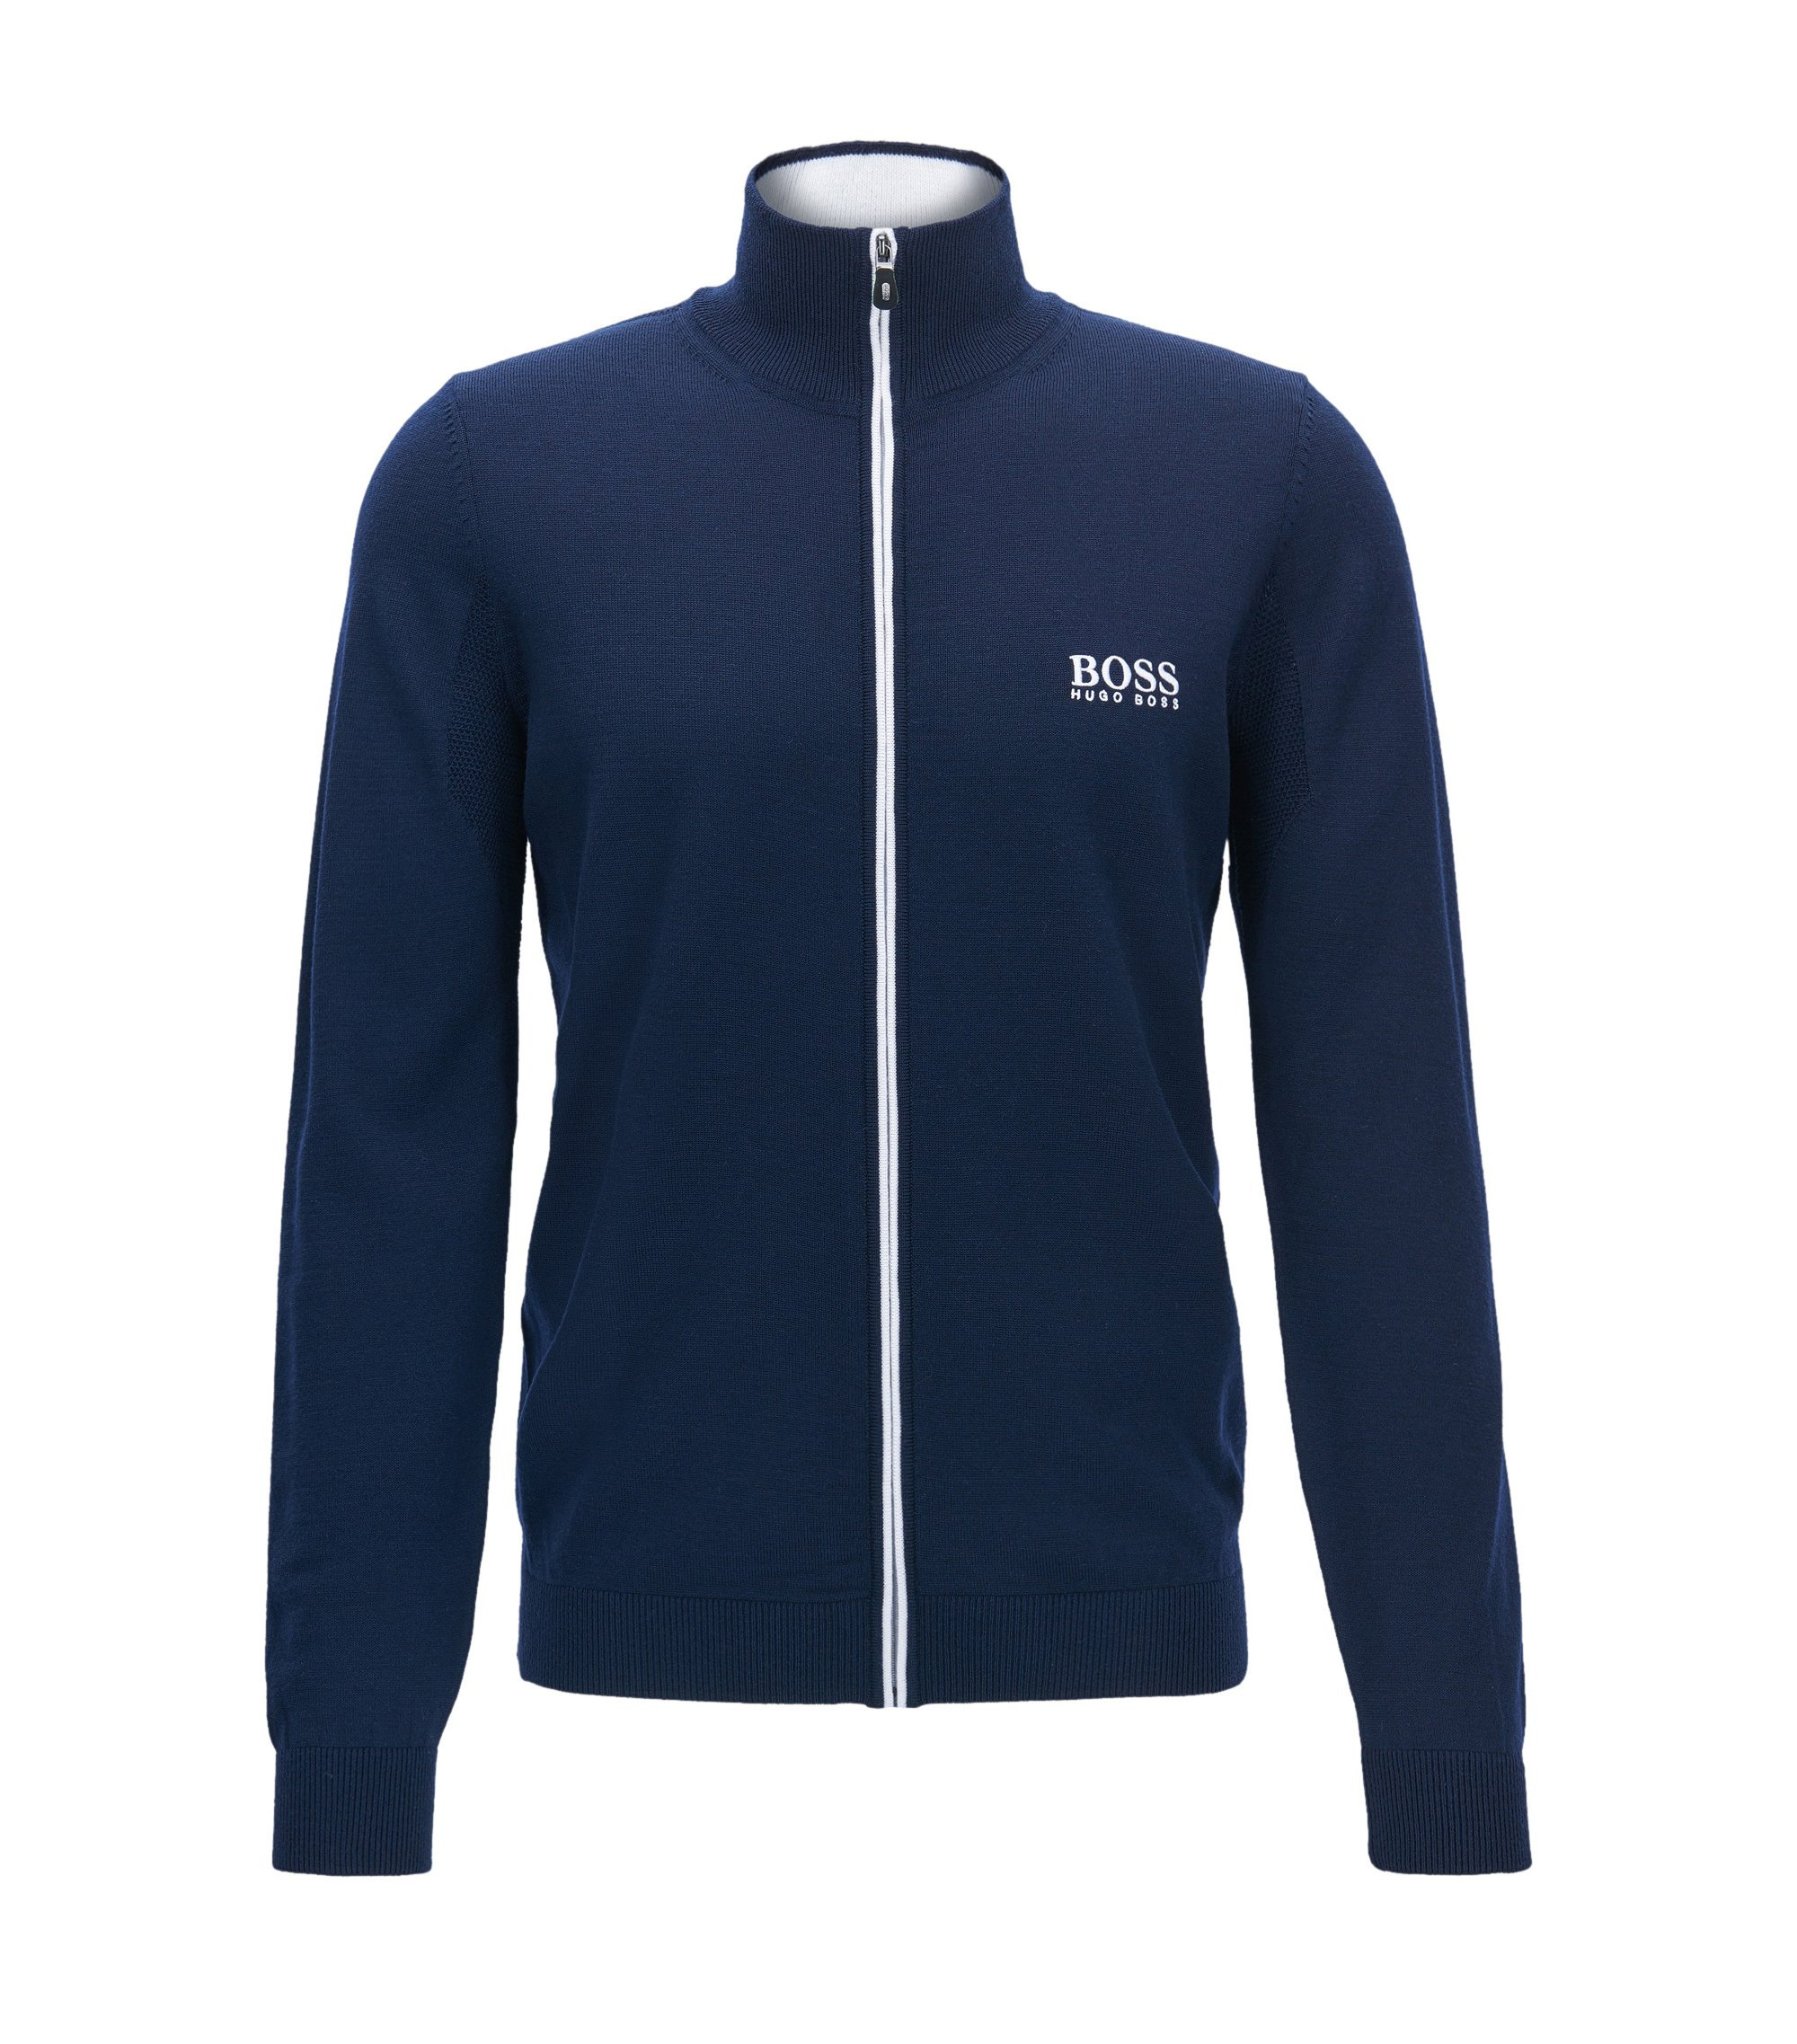 Virgin Wool Full-Zip Sweater Jacket | Zeen Pro, Dark Blue